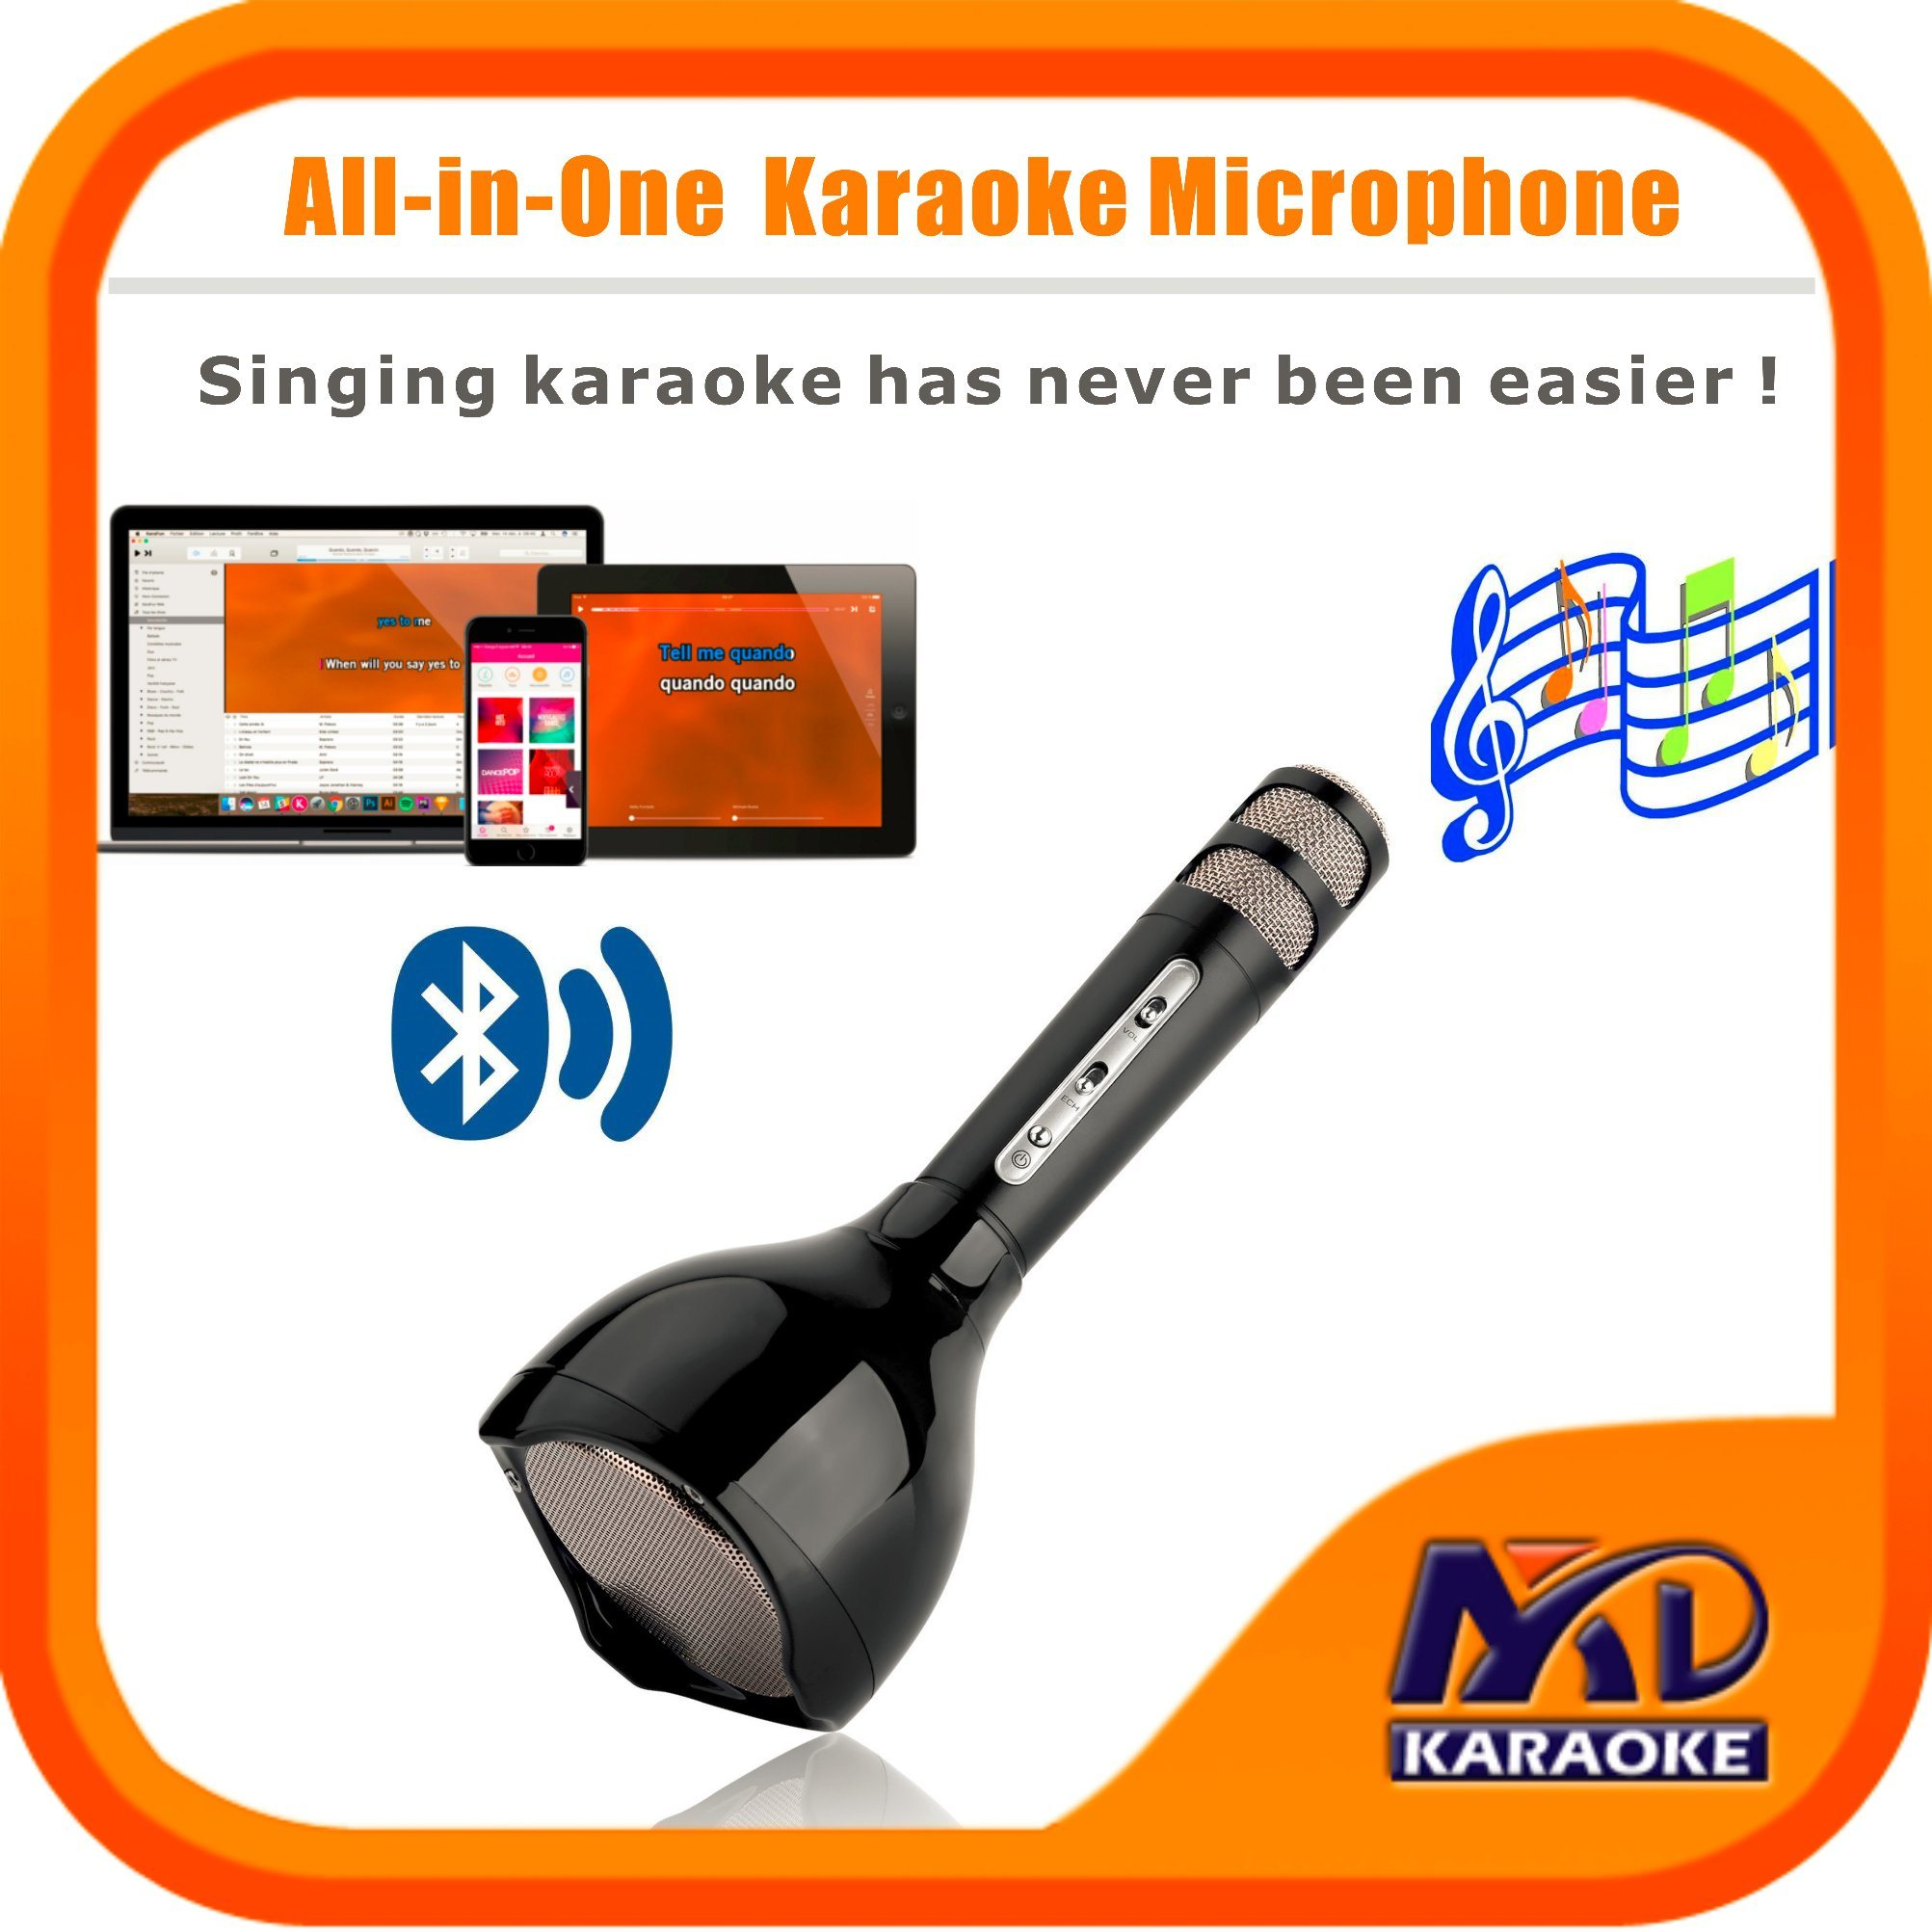 Portable Wireless Karaoke Microphone, Bluetooth Speaker Player for Music Playing Singing at Home KTV Party Travel Outdoor, Adapt to Apple iPhone Android.